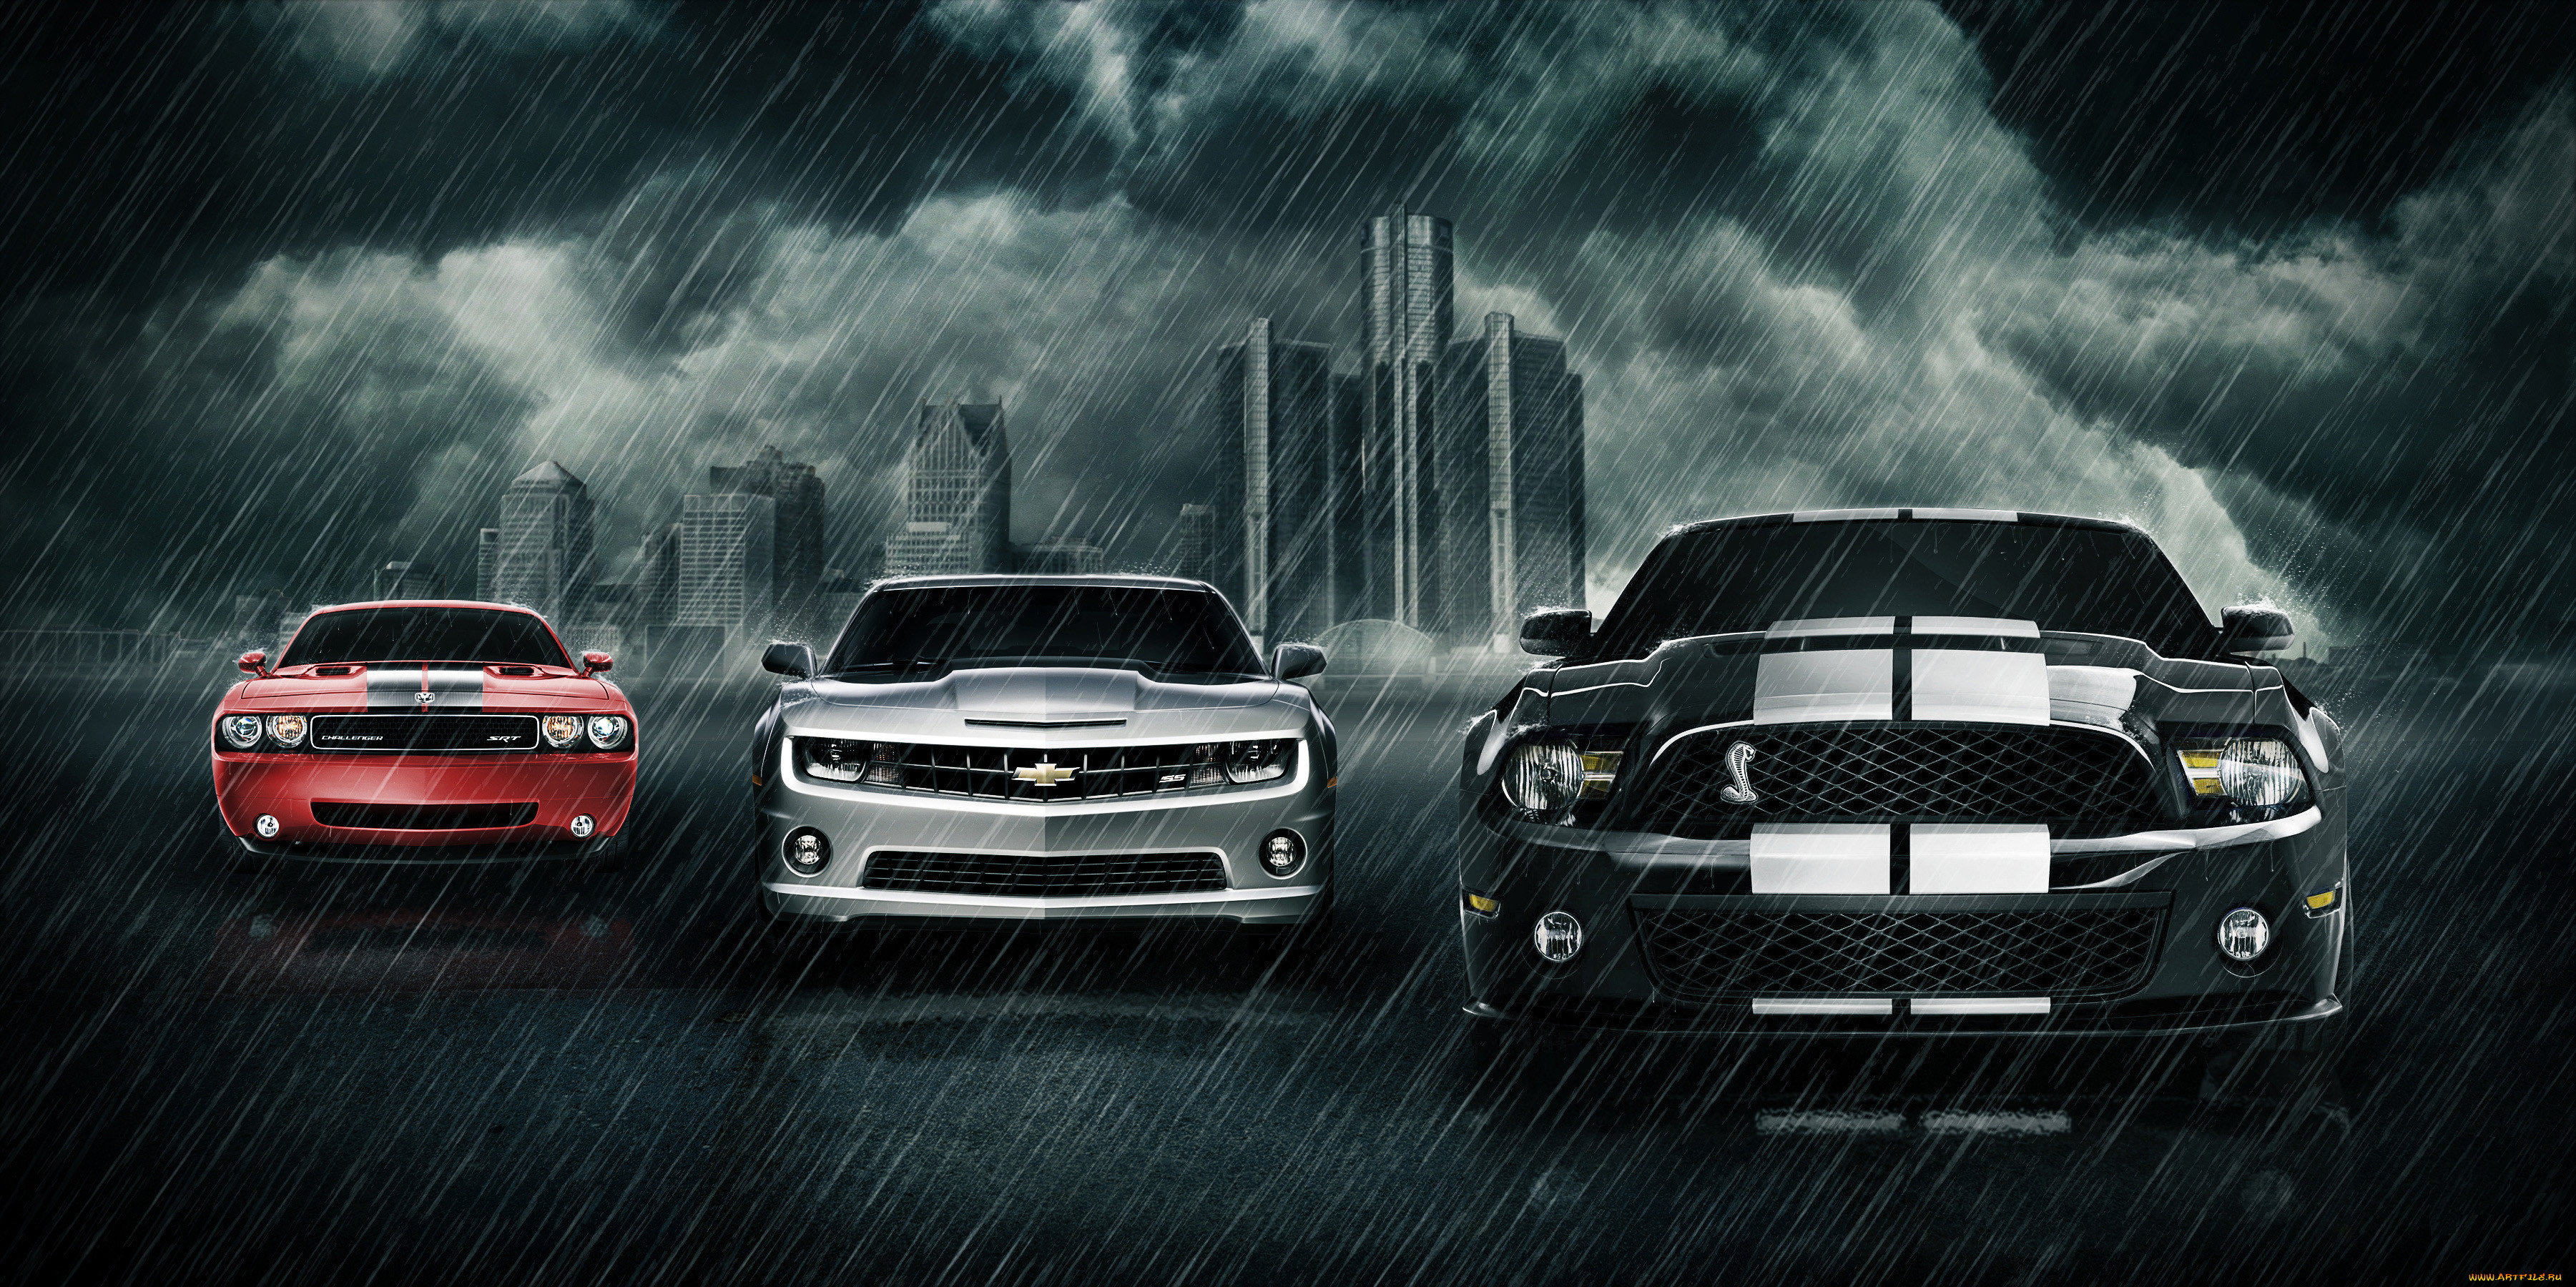 WallpapersWide.com | Cars HD Desktop Wallpapers for ...